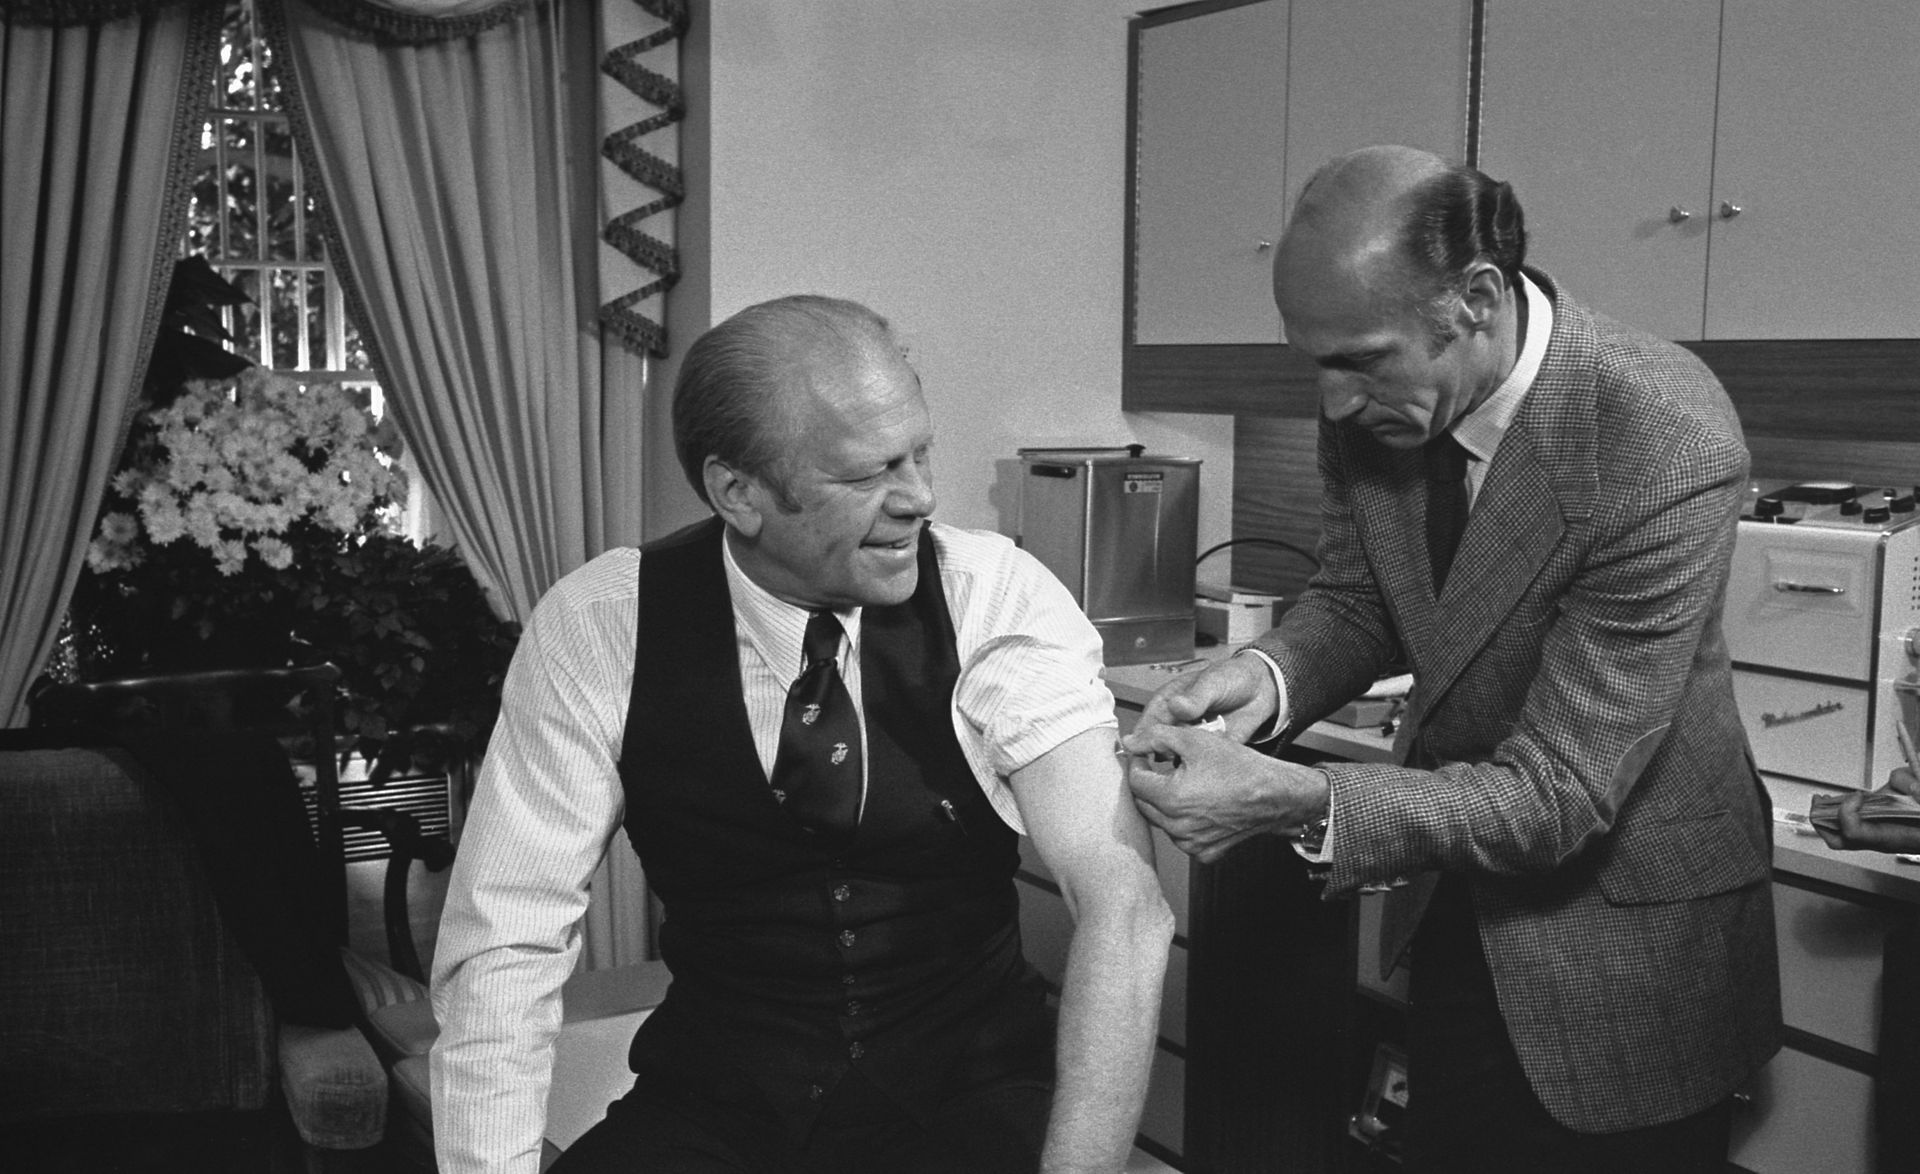 President_Ford_receives_a_swine_flu_inoculation